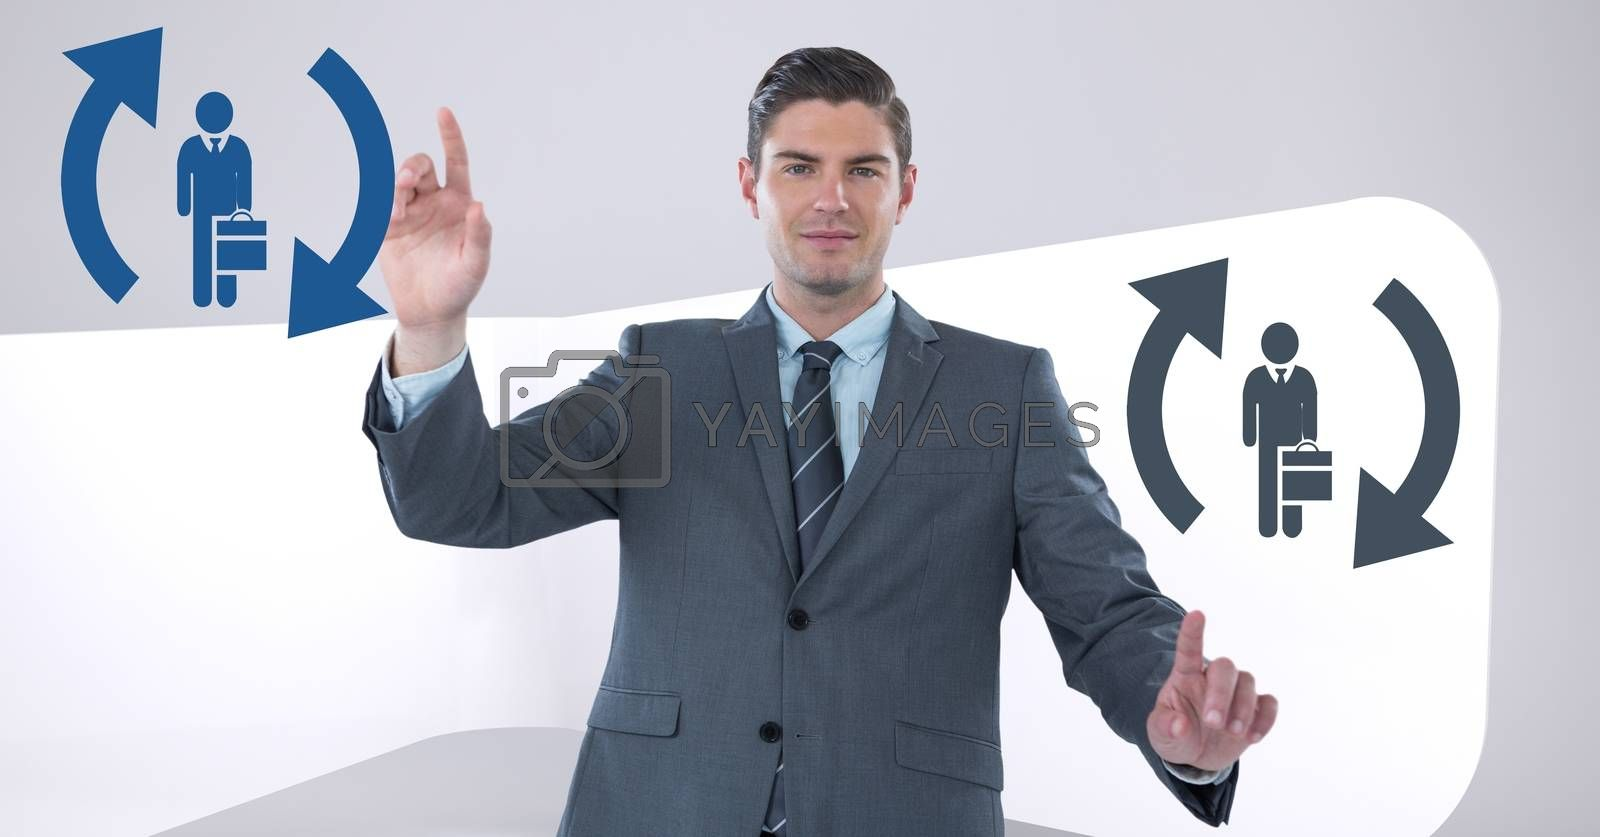 Digital composite of Businessman interacting and choosing a person from people icons with refresh symbols